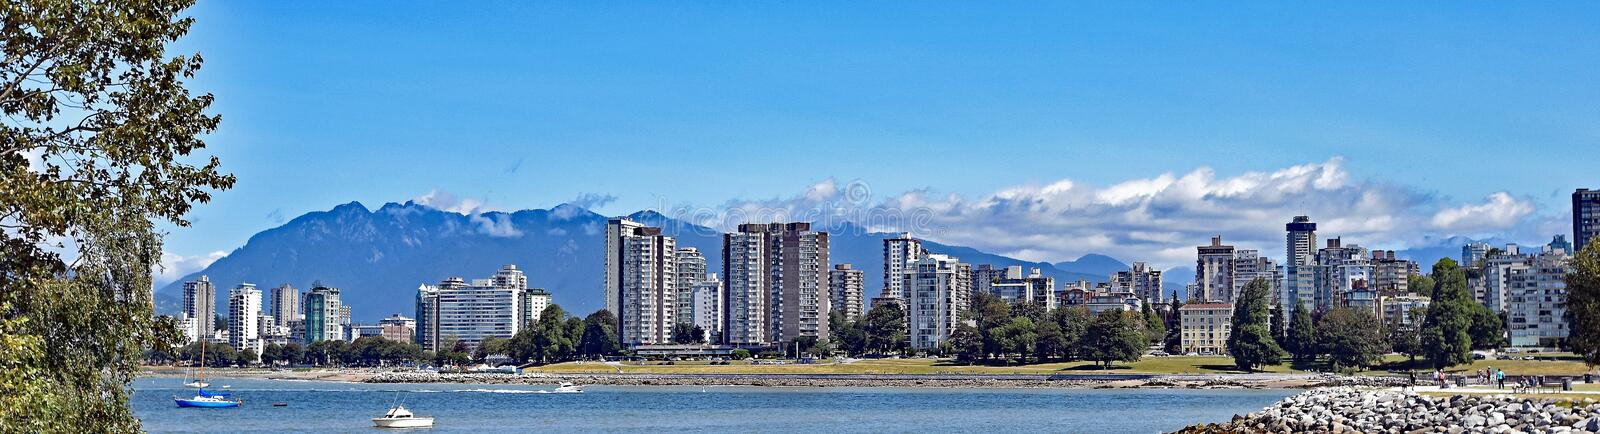 Afternoon blues across a Vancouver Skyline, British Columbia stock images